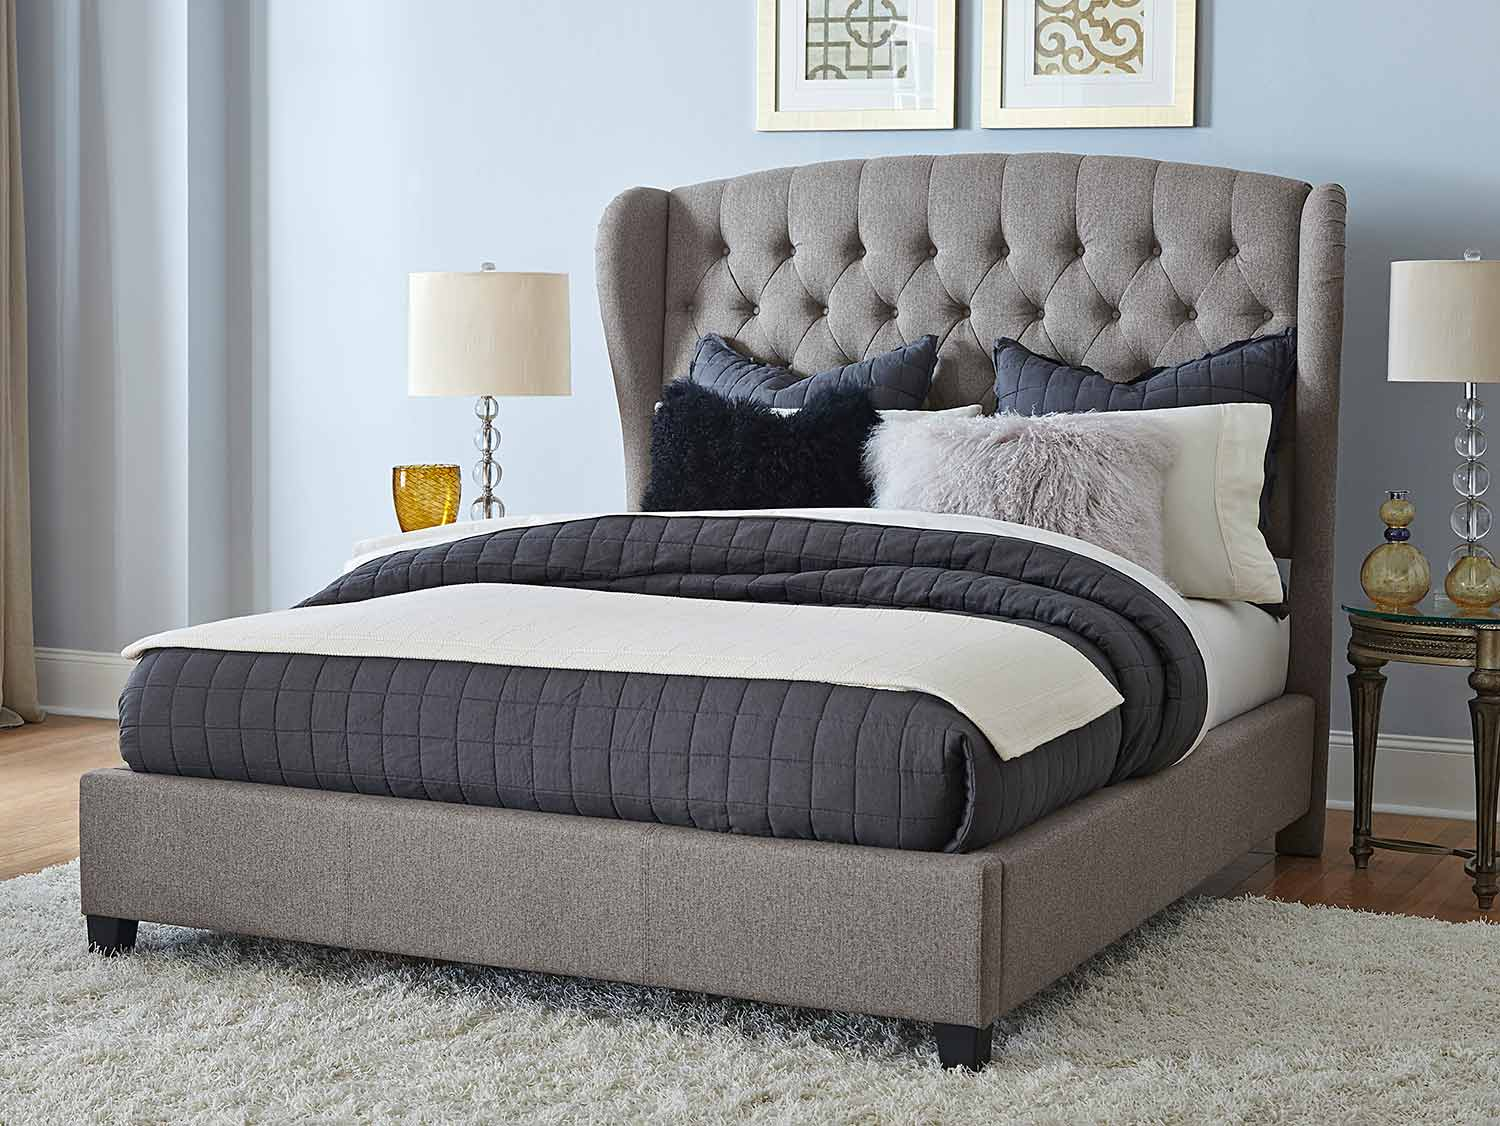 Hillsdale Bromley Upholstered Bed - Orly Gray Fabric